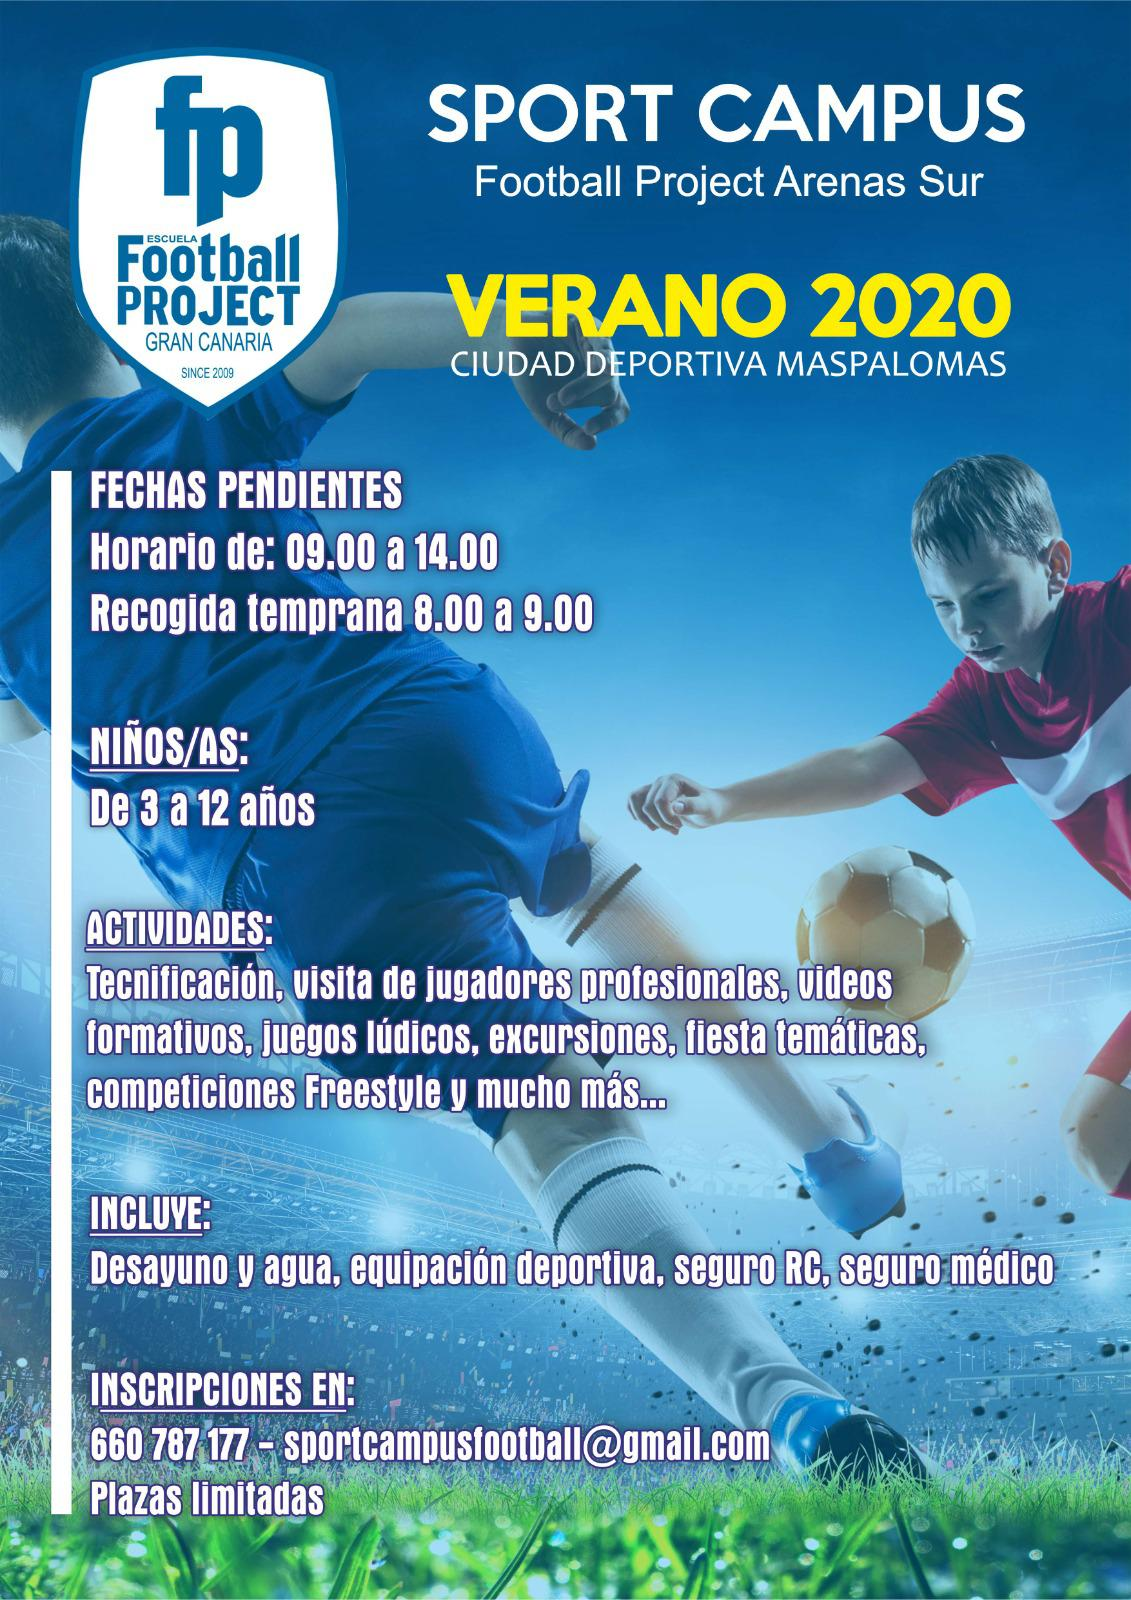 Campus verano 2020 Football Project